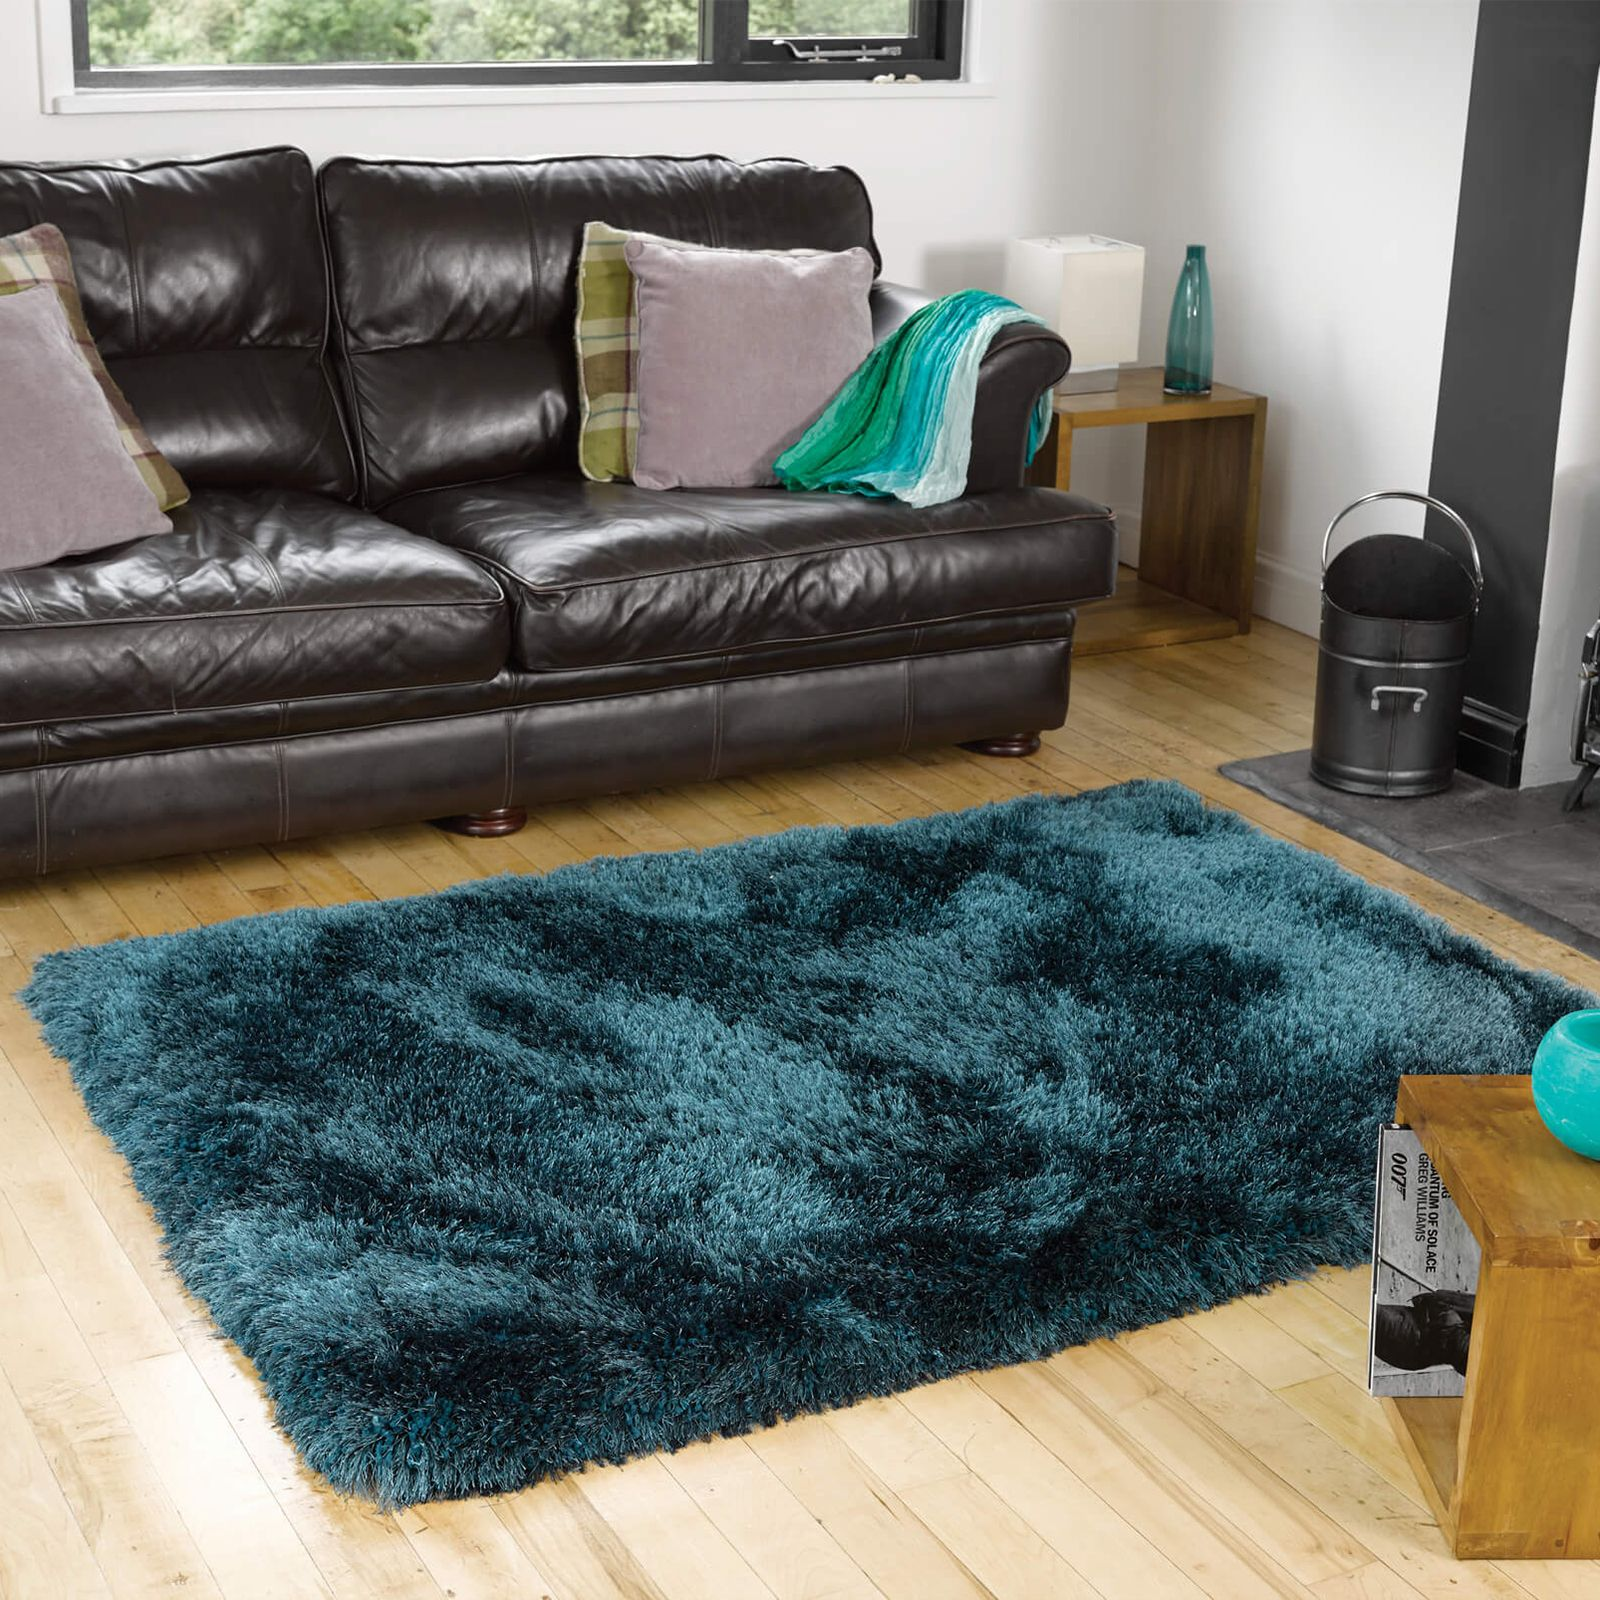 Experience The Feeling Of Luxury With The Richness Of The Pearl Shaggy Rugs The Incredibly Deep 8cm Shag Pile Means Toes Simply In 2020 Teal Rug Plain Rugs Floor Rugs